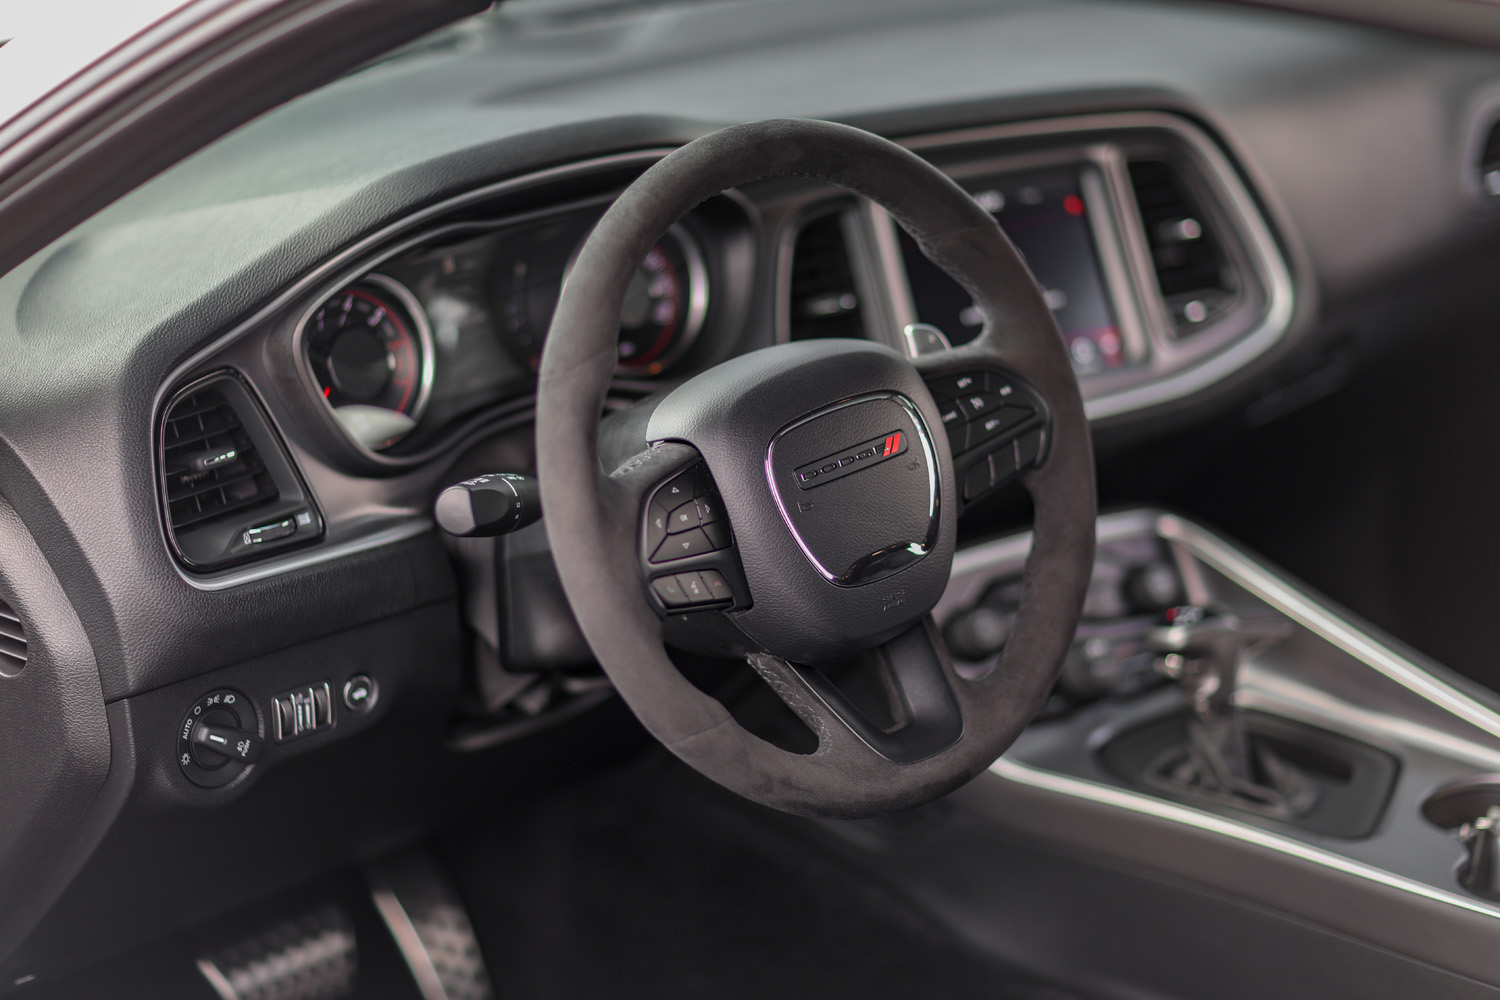 2019 Challenger R/T Scat Pack 1320 Steering Wheel